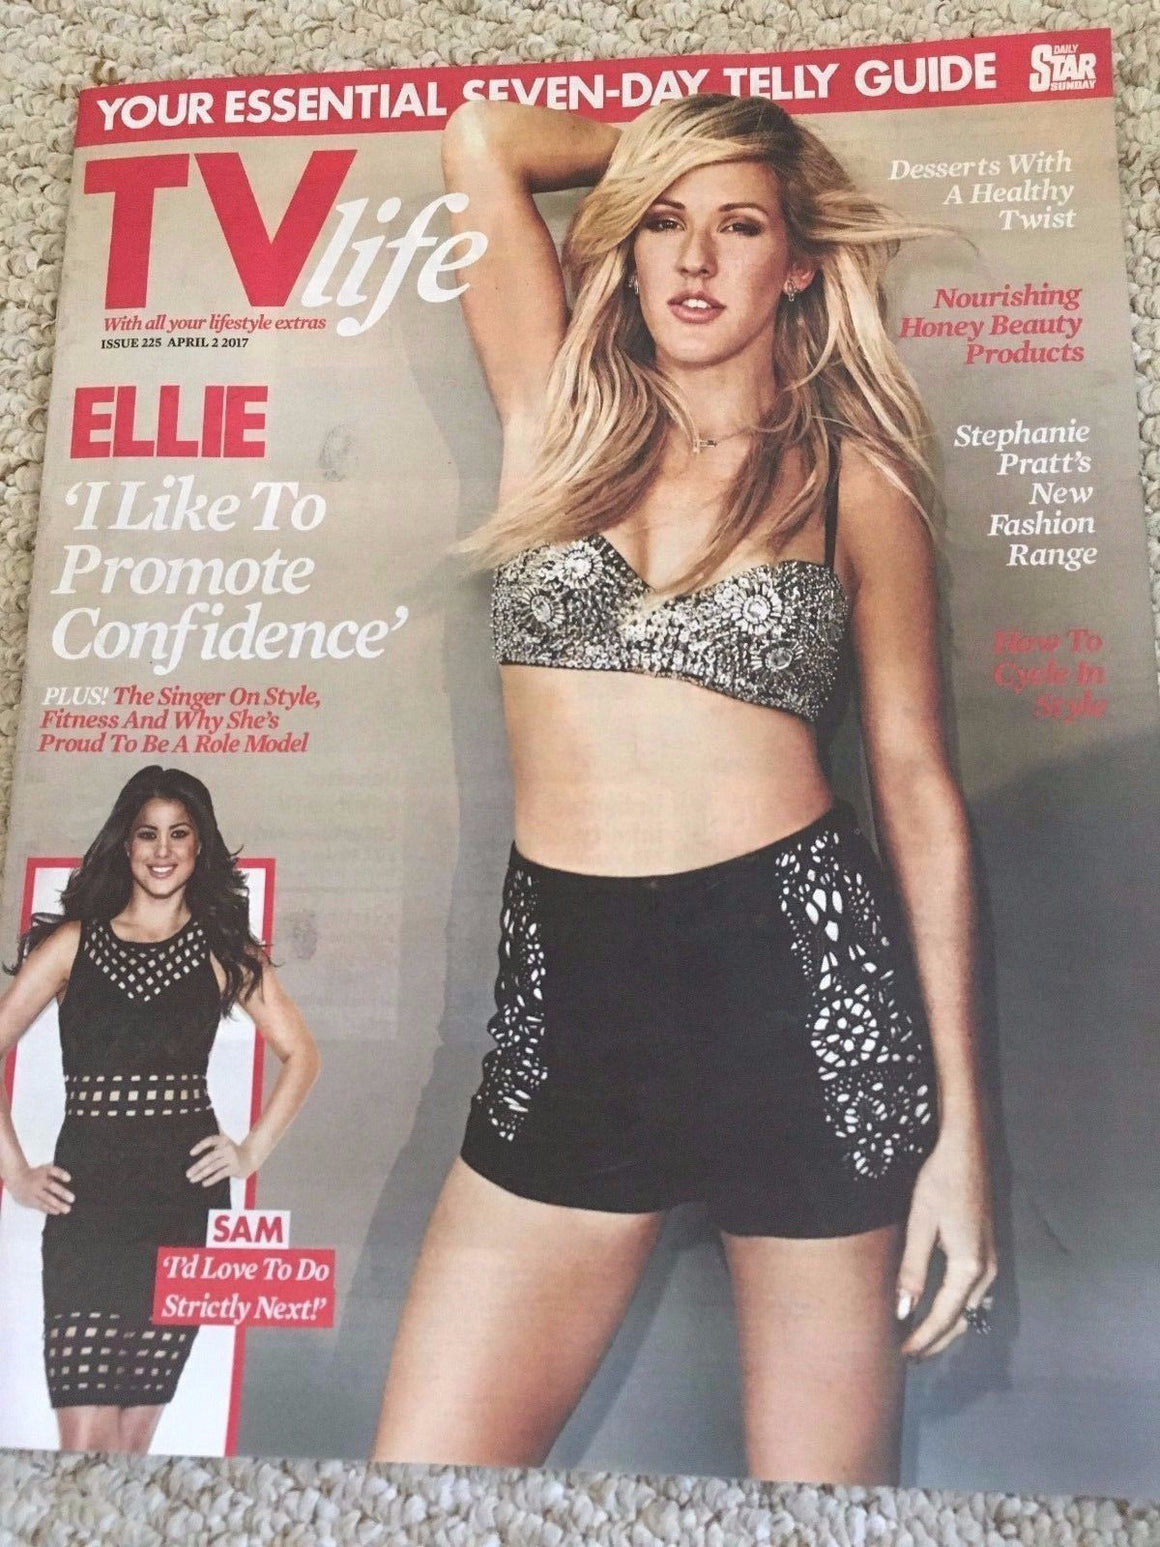 TV Life Magazine April 2017 Ellie Goulding Photo Cover interview